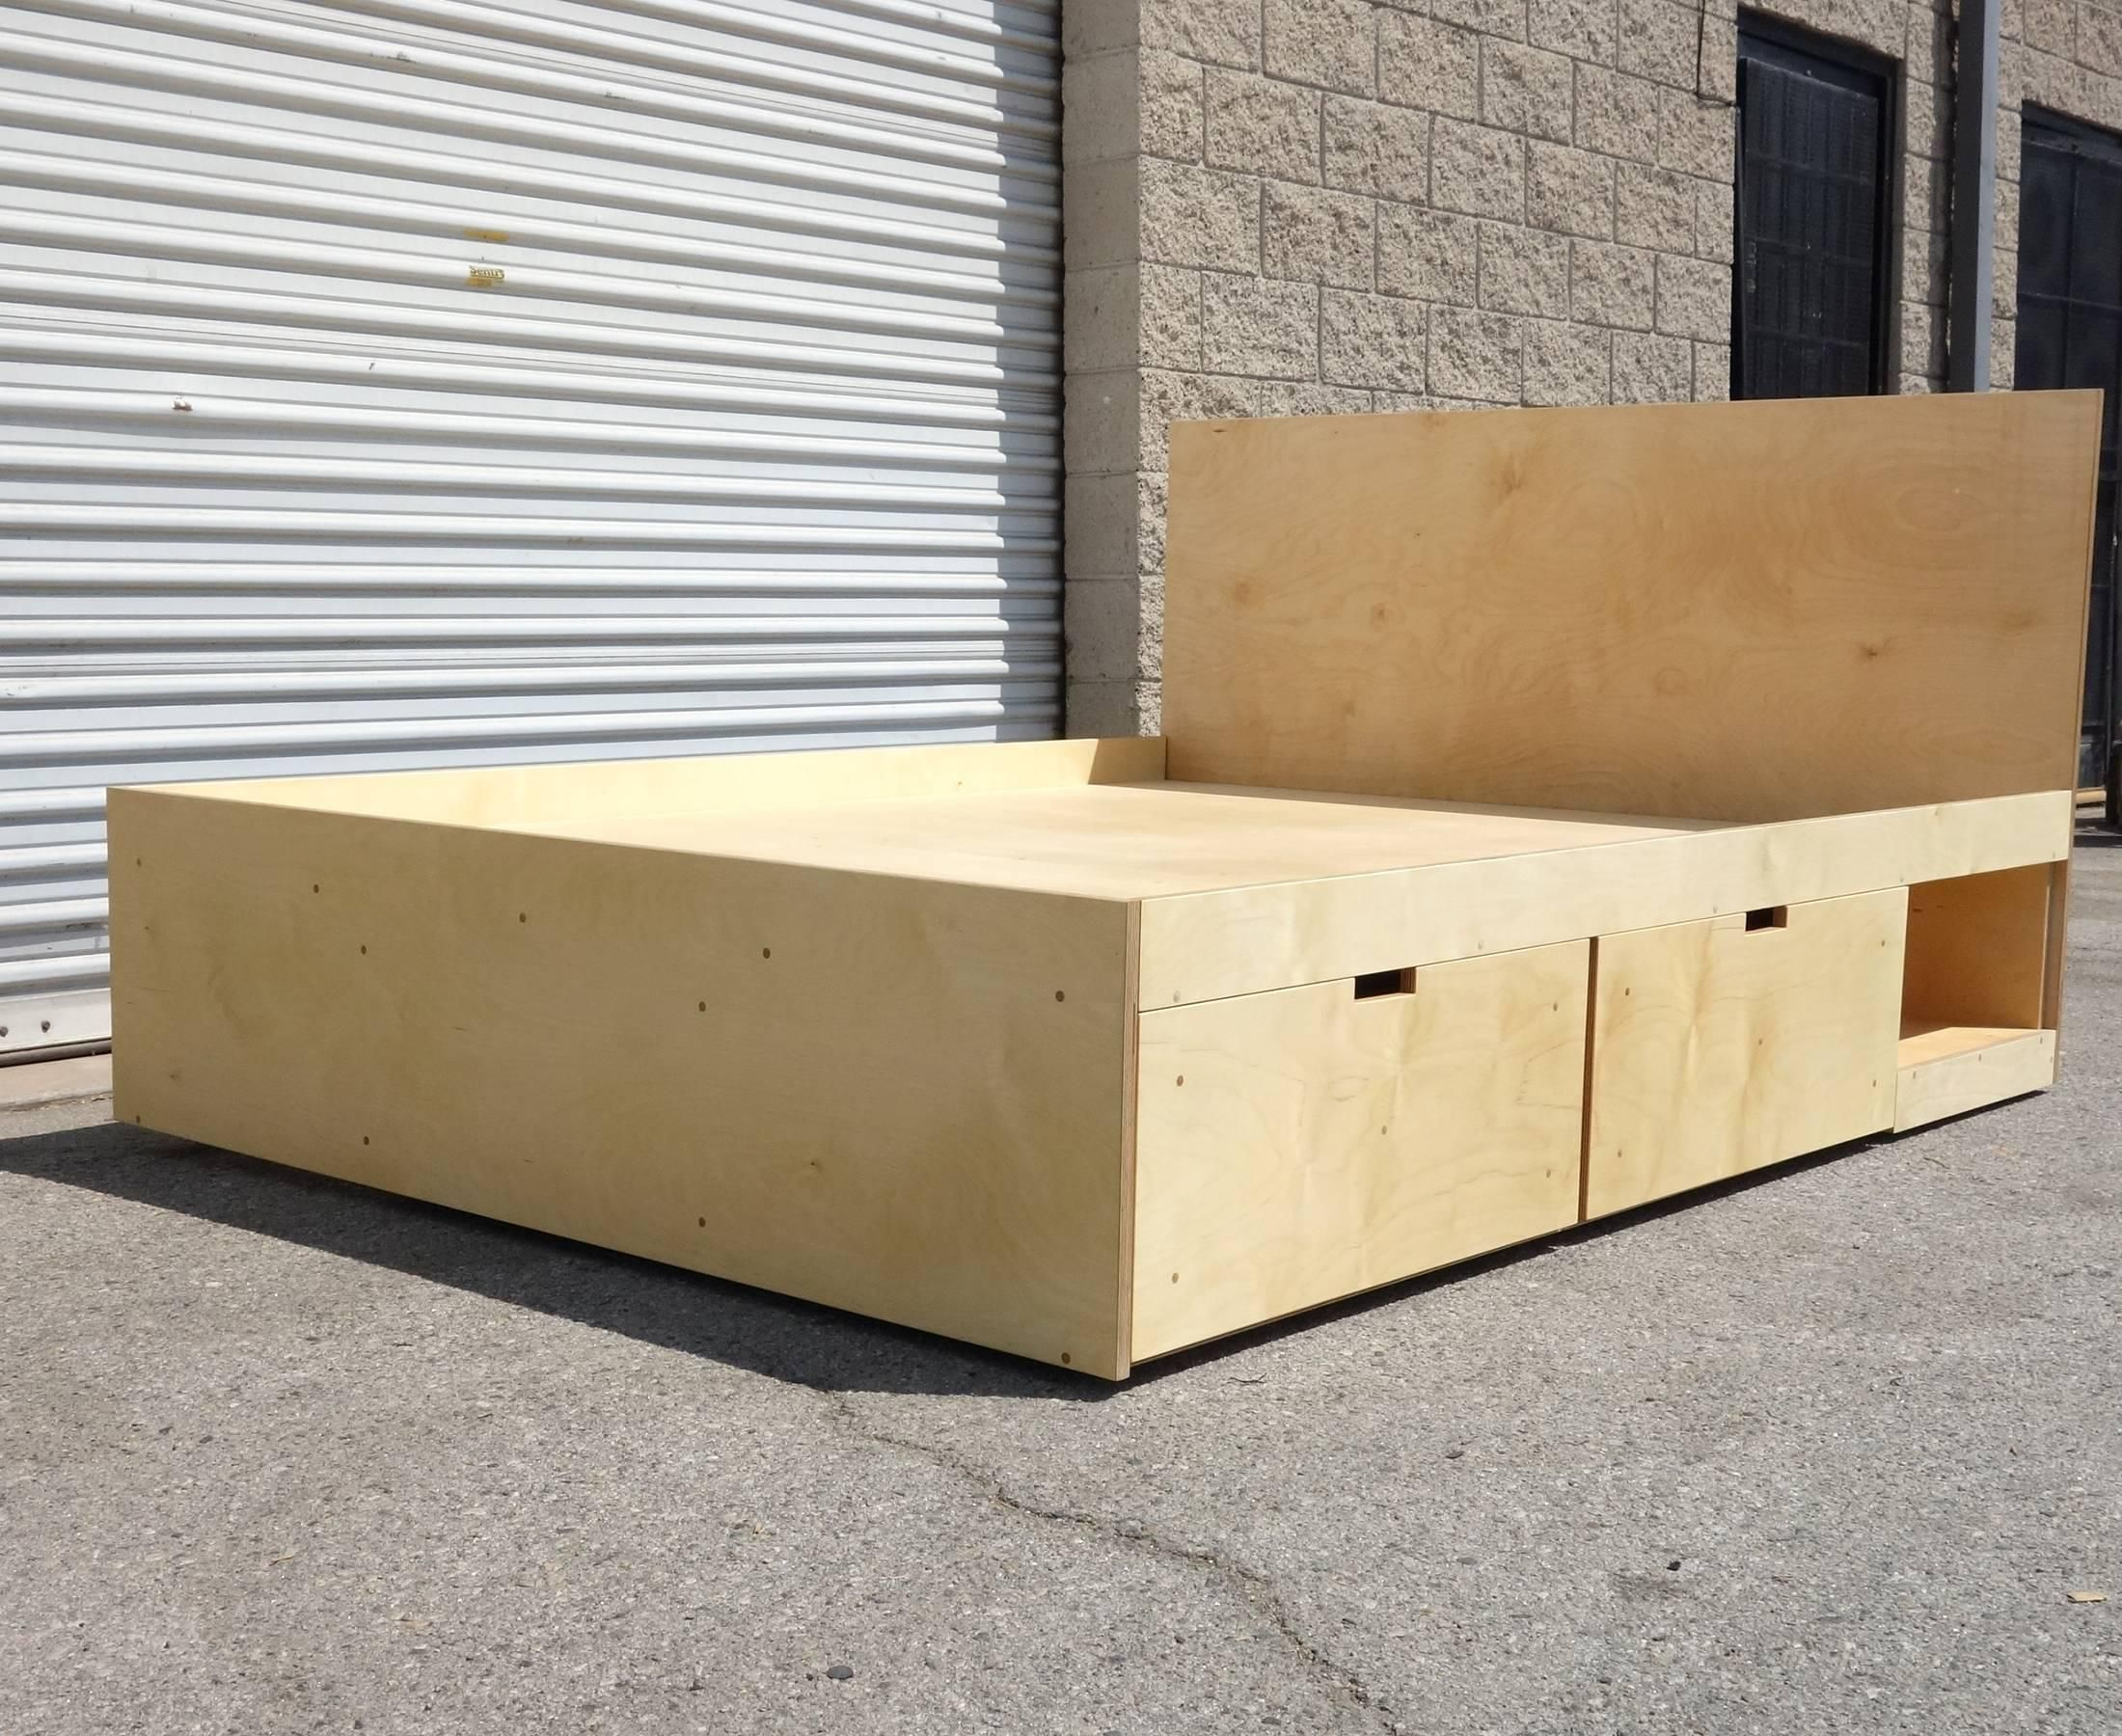 Waka Waka Contemporary Plywood Box Bed With Storage For Sale At